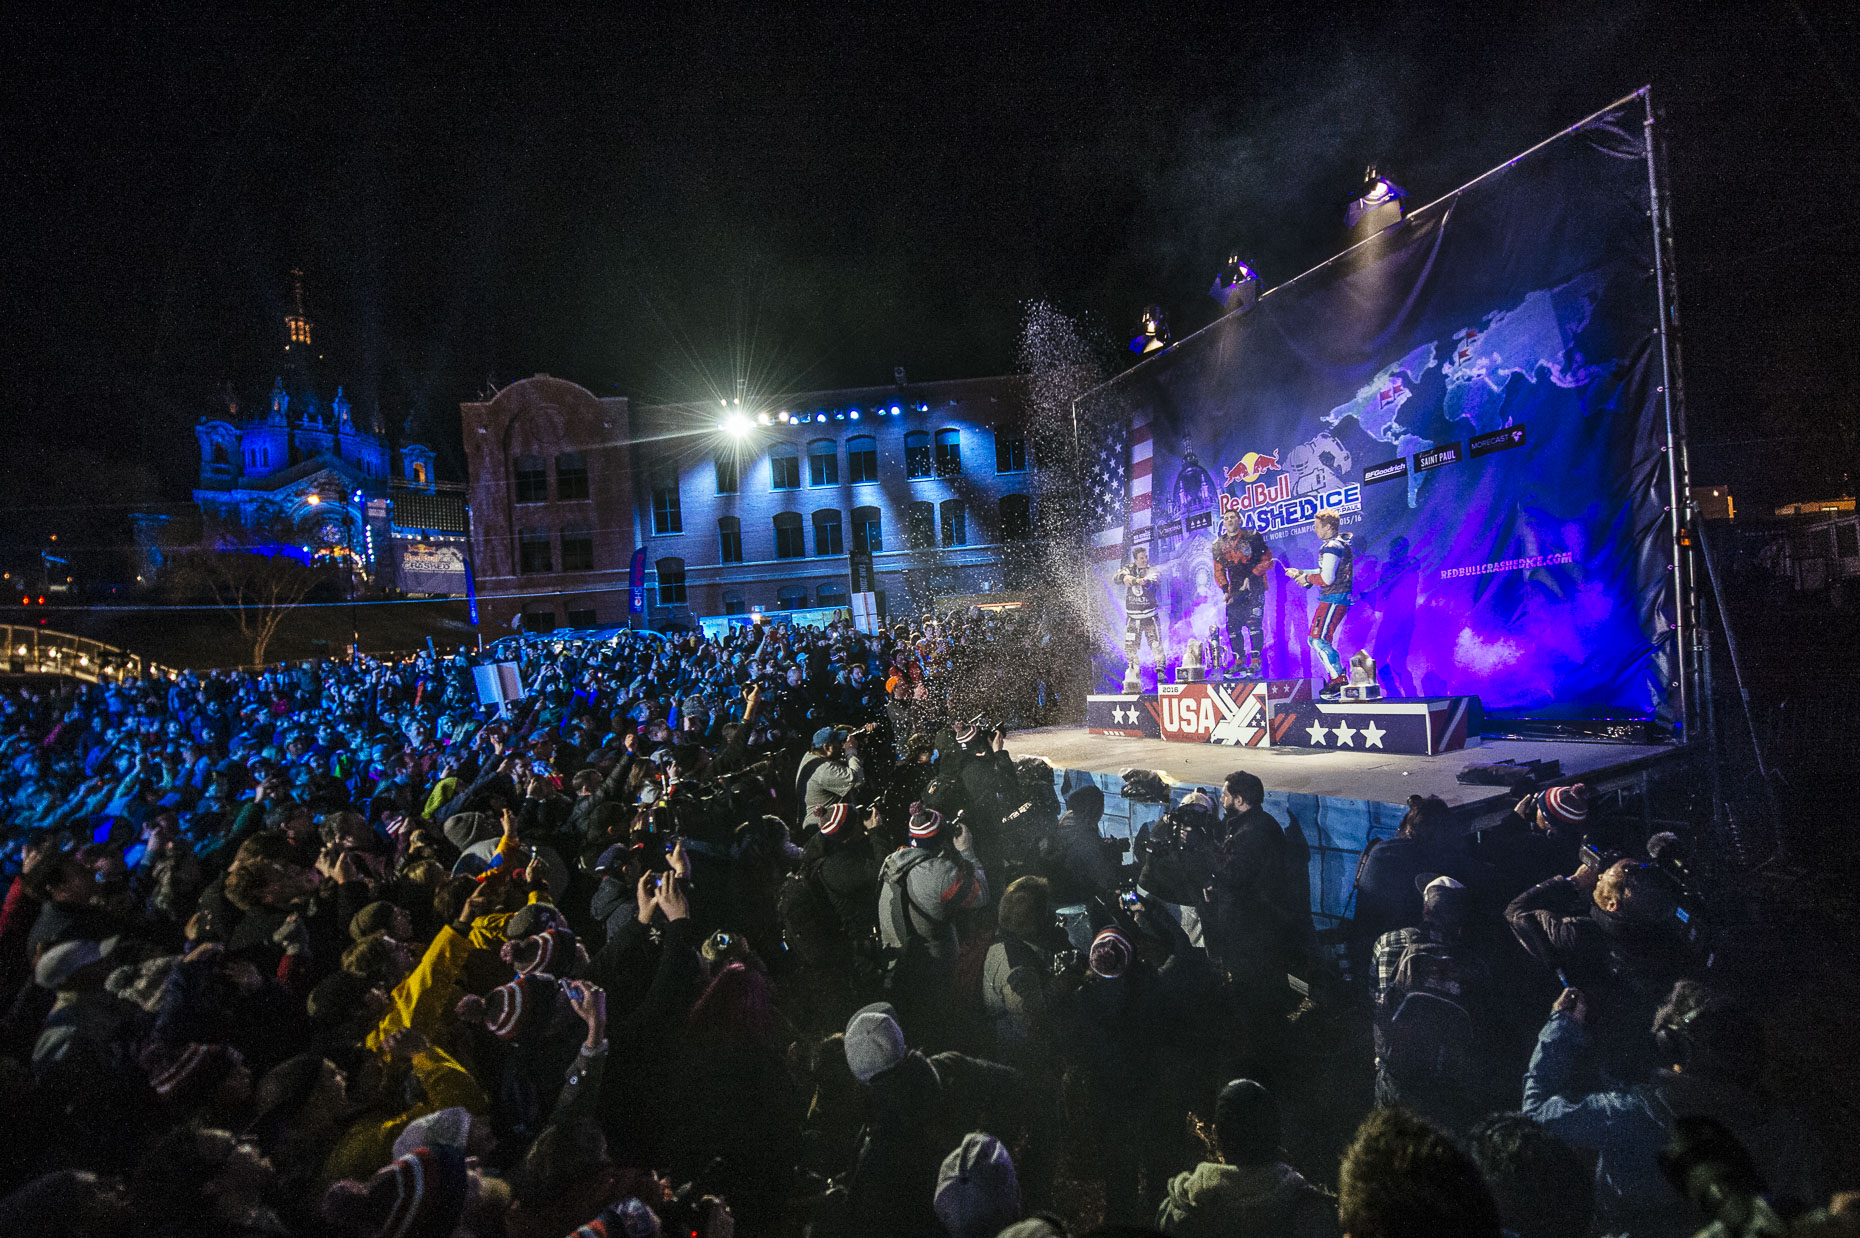 RT_20160227_CRASHEDICE_STP-3905